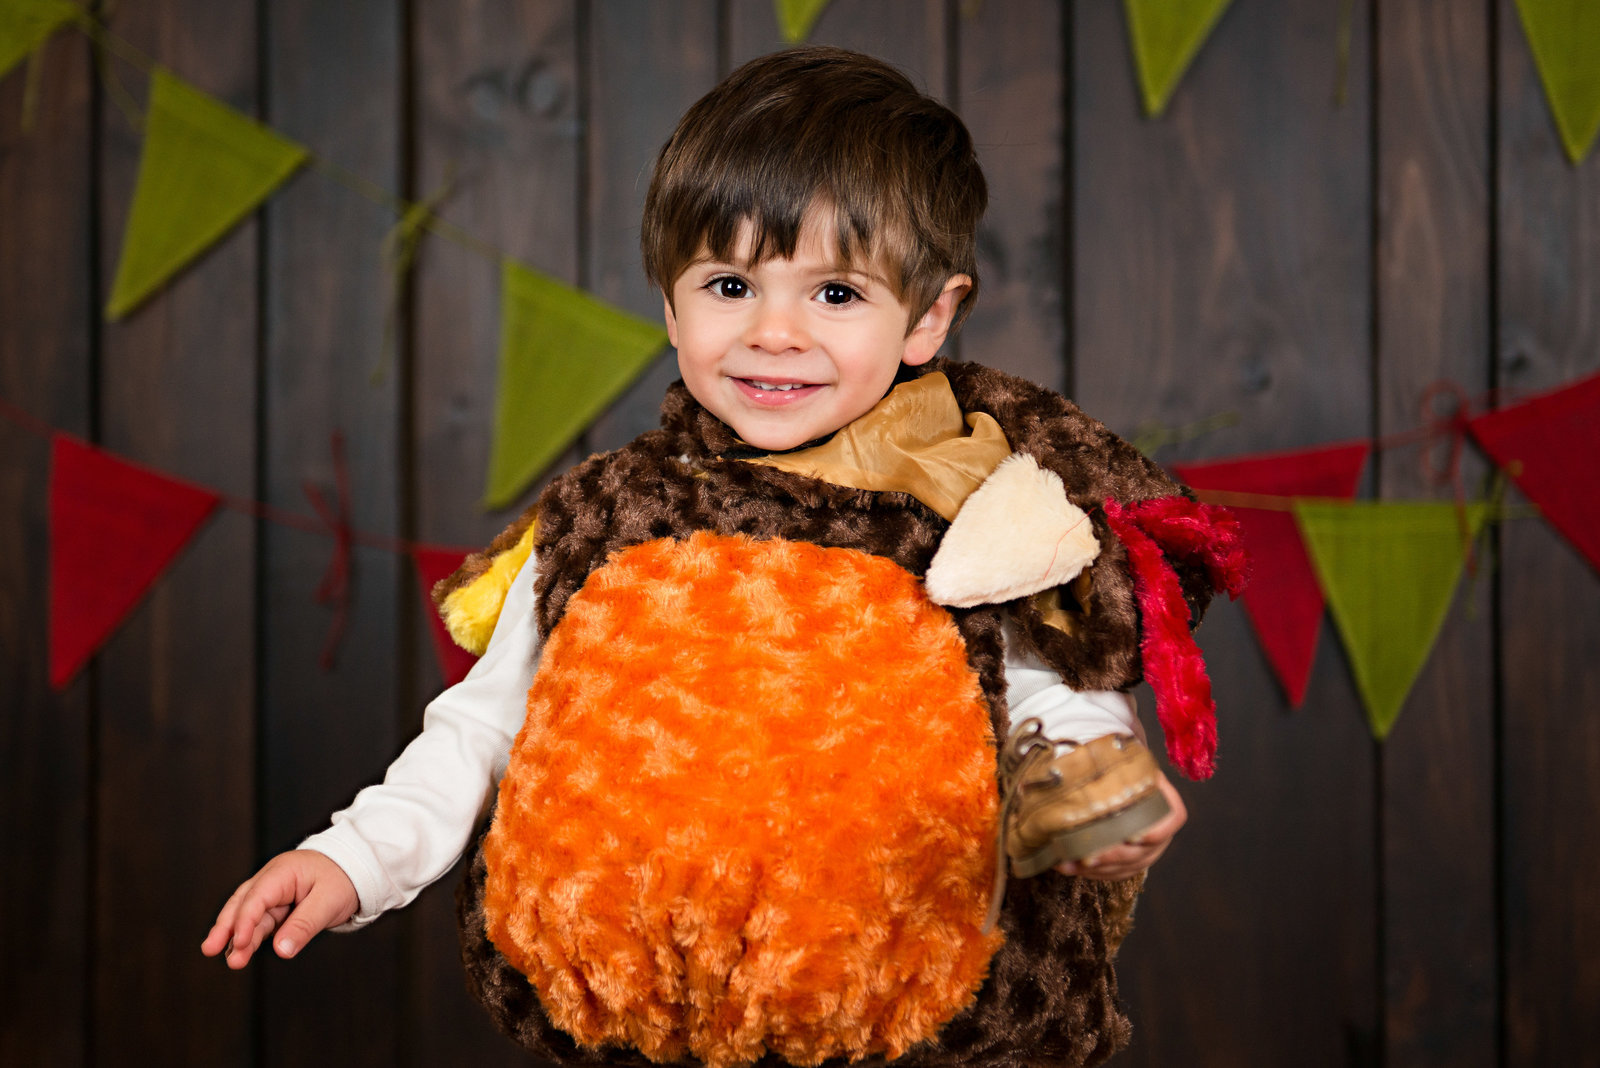 caitlin-chadwick-studios-holiday-mini-portrait-beautiful-brunette-brown-eyed-boy-toddler-happy-organic-woodsy-autumn-colors-turkey-costume_0003-3500